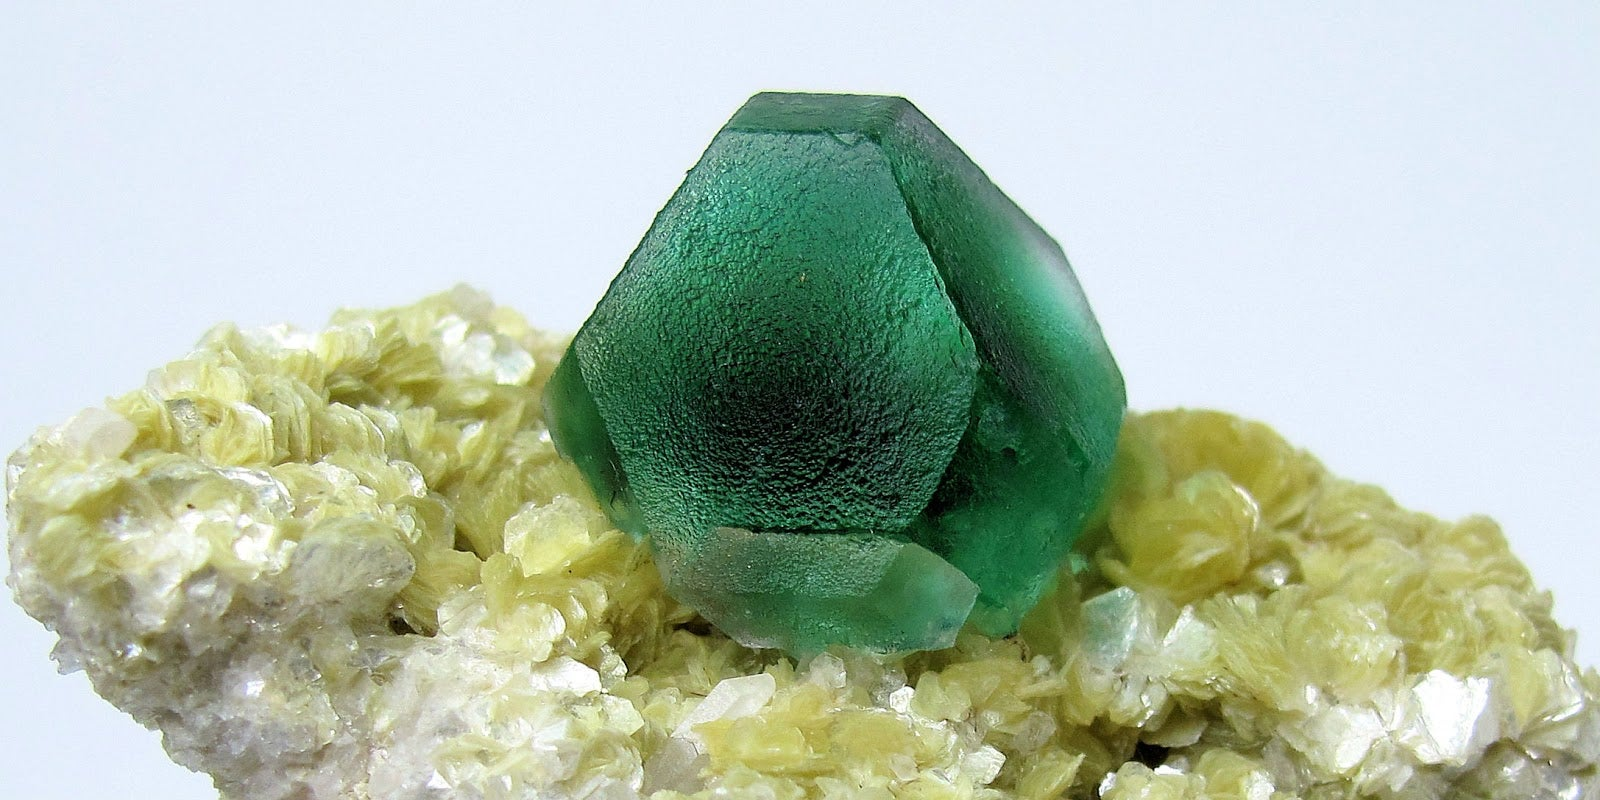 The 9 Deadliest Minerals We've Ever Mined